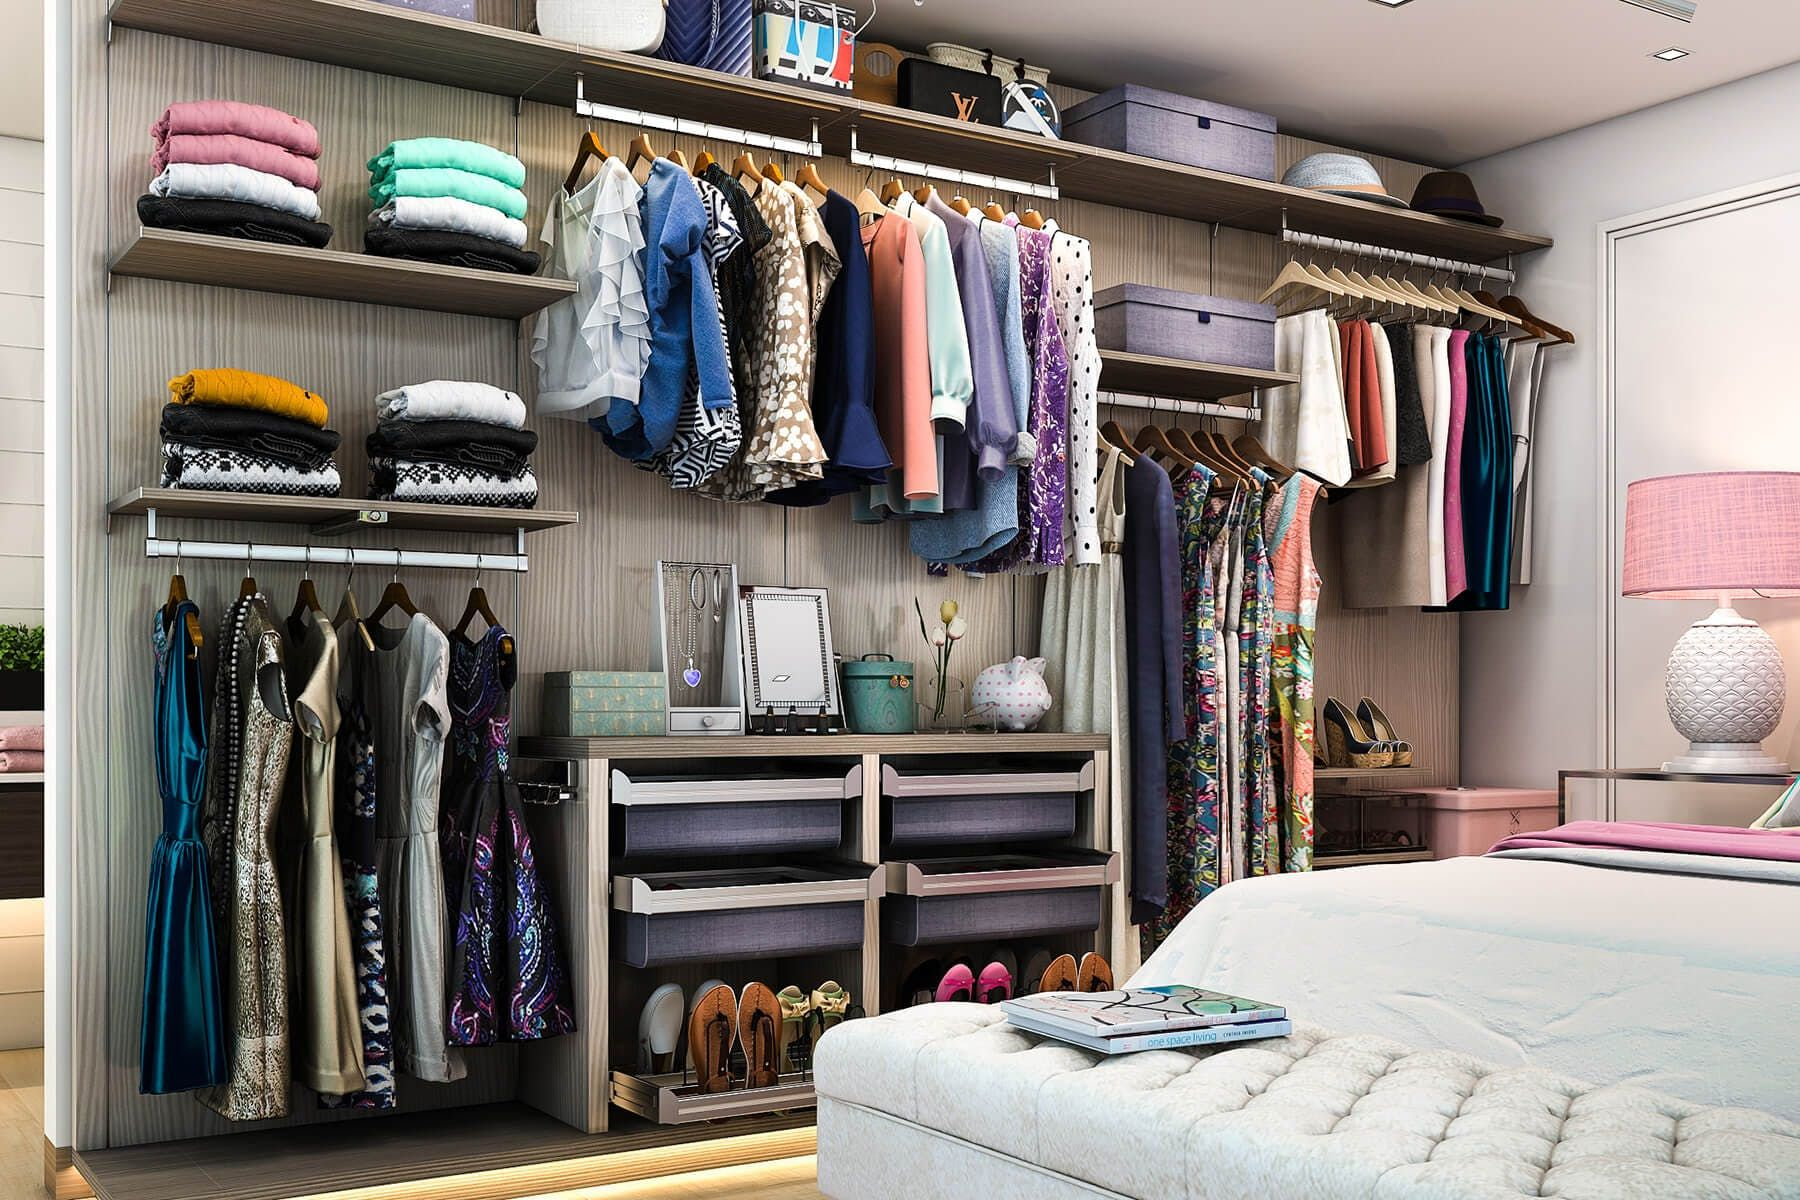 Finesse Wardrobe Closet Inspired By Italian Design Features Linen Drawers,  Floated Shelving And Rods And